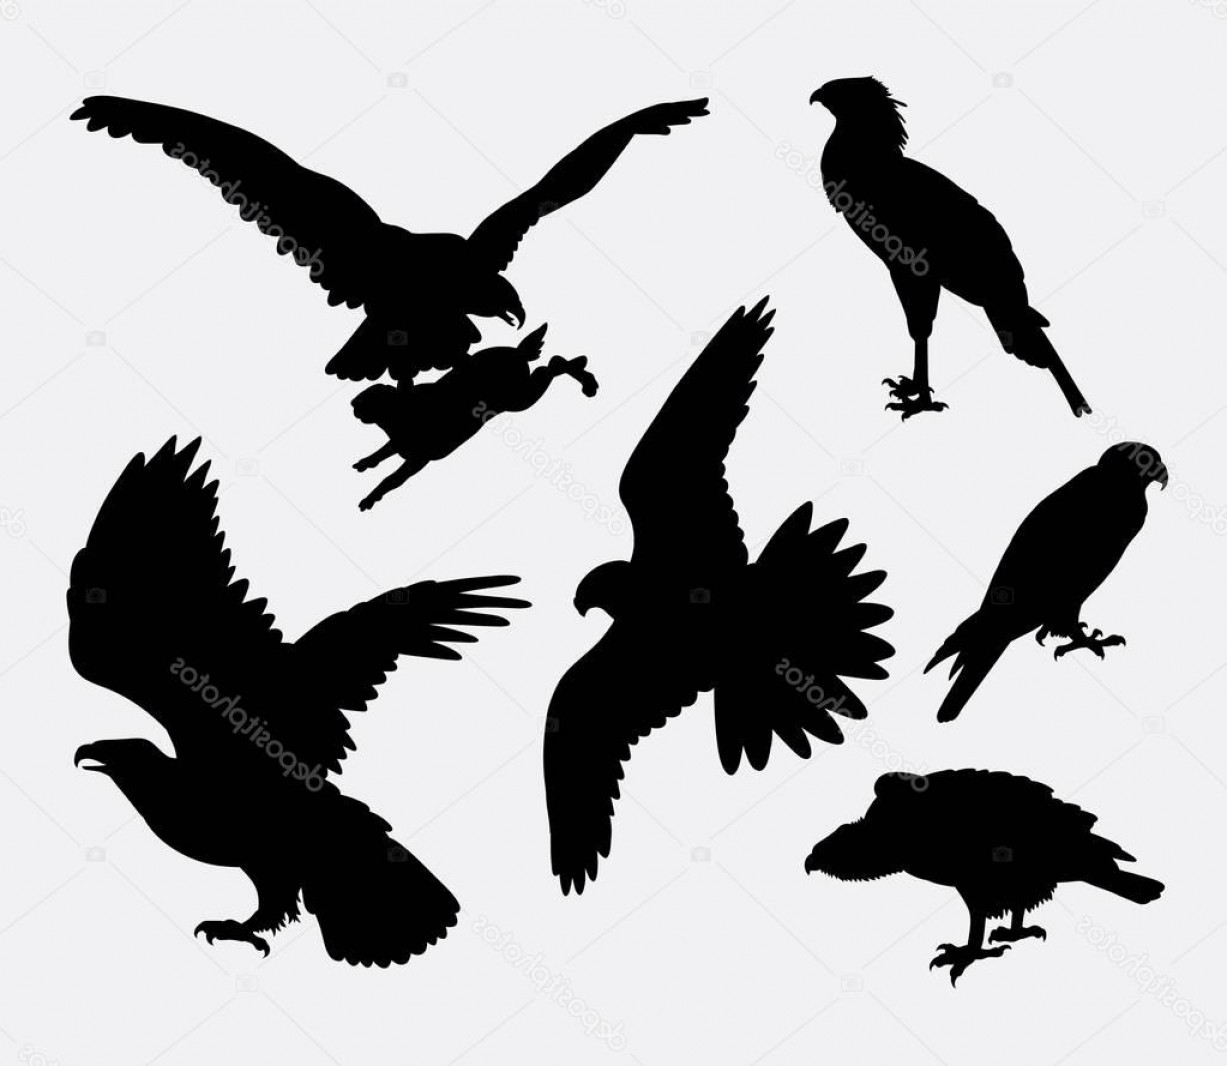 Falcon Silhouette Vector: Stock Illustration Eagle Hawk Falcon Pose Bird